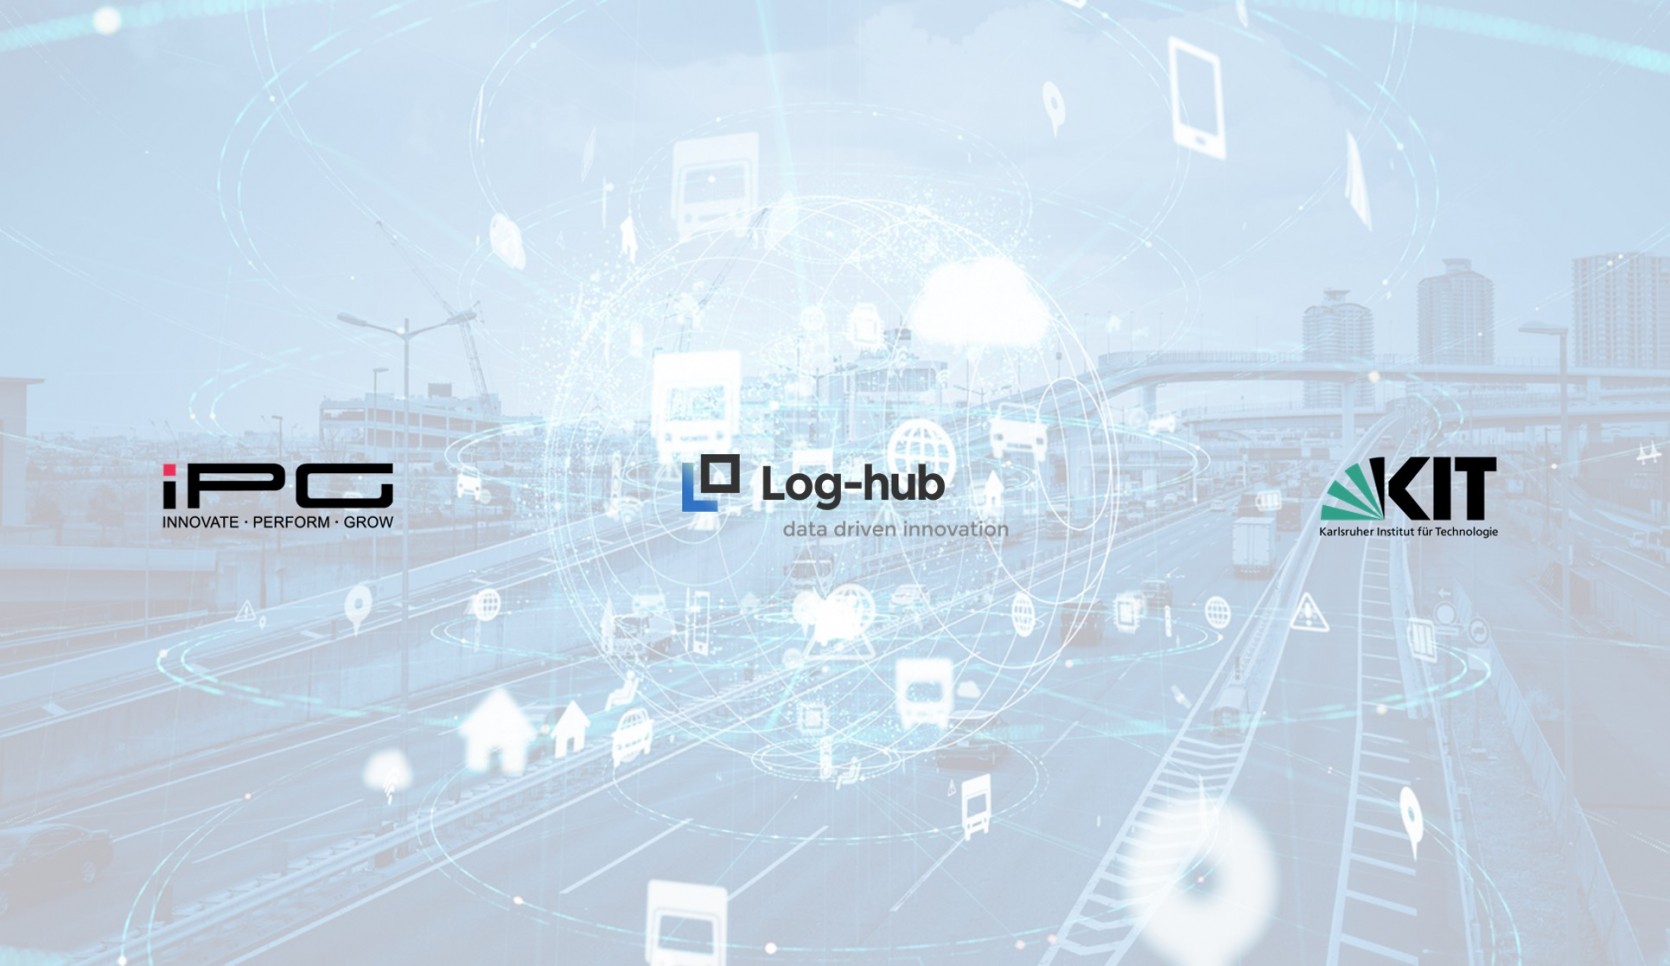 IPG, LOG HUB AND KIT LAUNCH ADVANCED SUPPLY CHAIN MANAGEMENT SURVEY